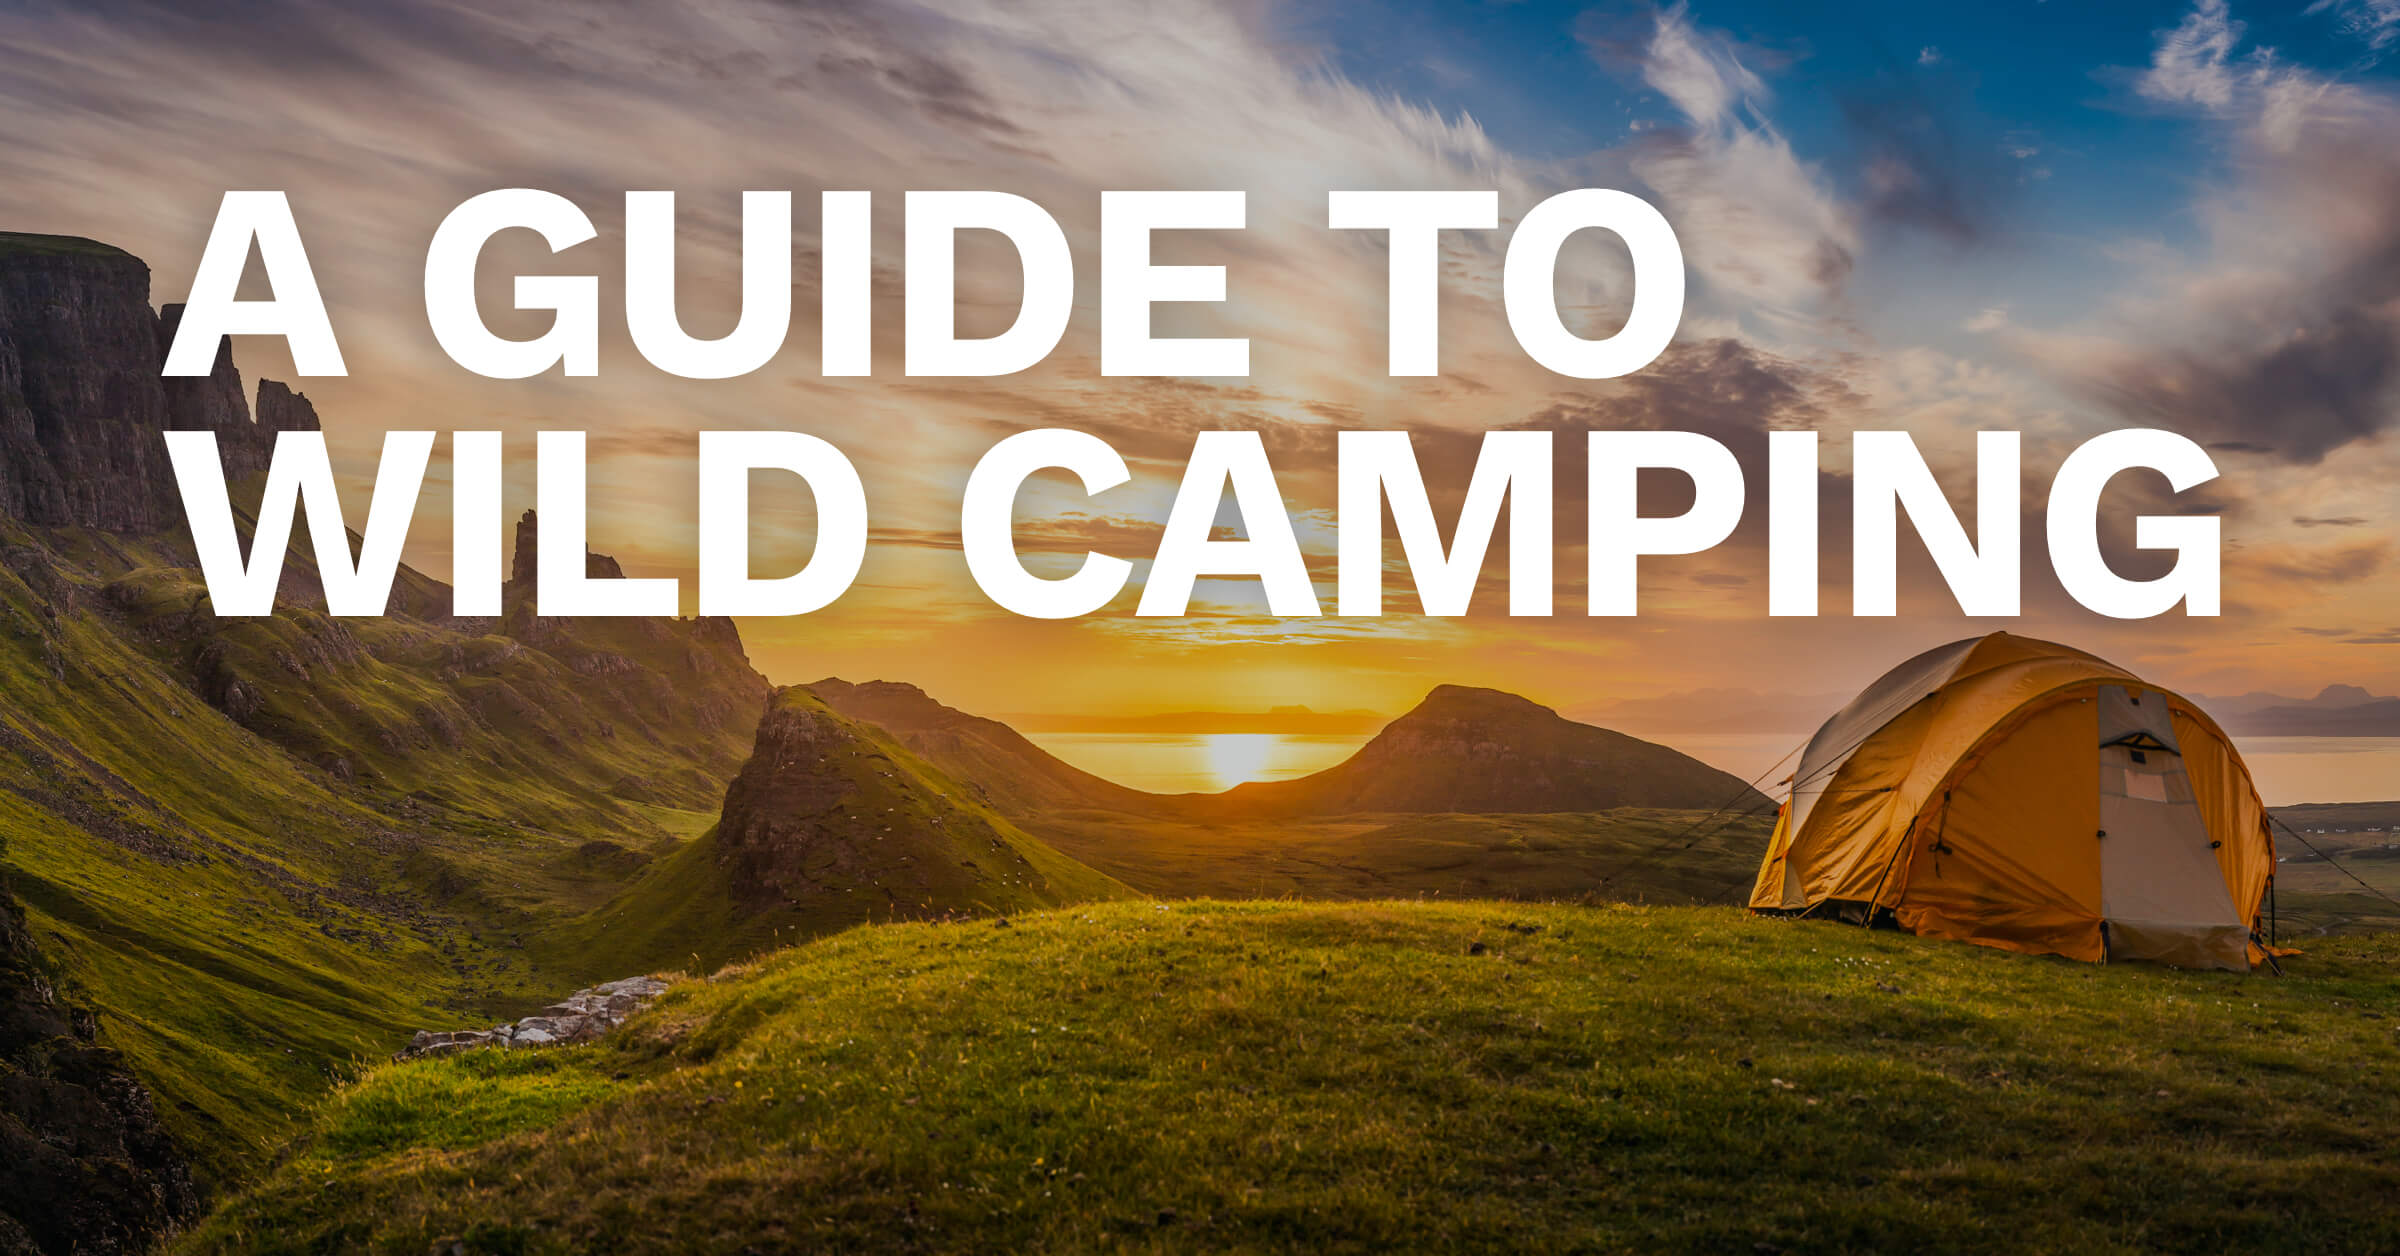 A Guide to Wild Camping